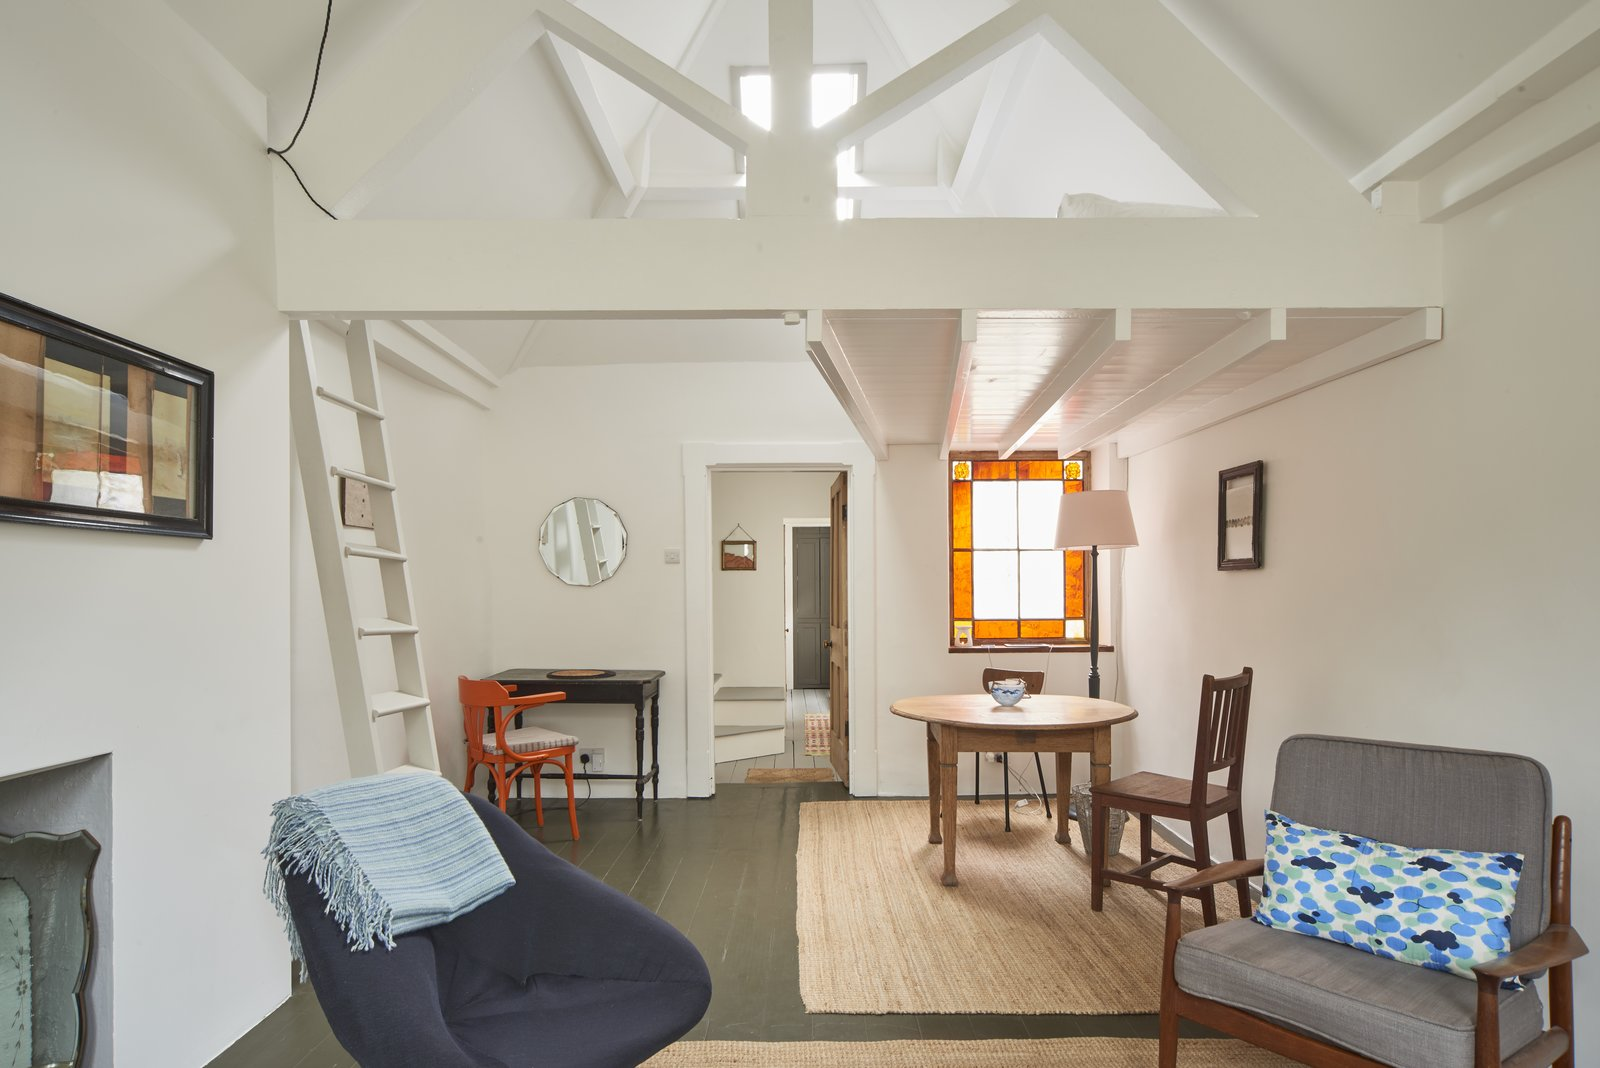 Living Room, Chair, Table, Lamps, Floor Lighting, Dark Hardwood Floor, Desk, and Rug Floor The quaint living space features a stained-glass window, lofted sleeping platform, vaulted ceilings, and arched-sash windows.  Photo 8 of 8 in 6 Best Dwell UK Apartments